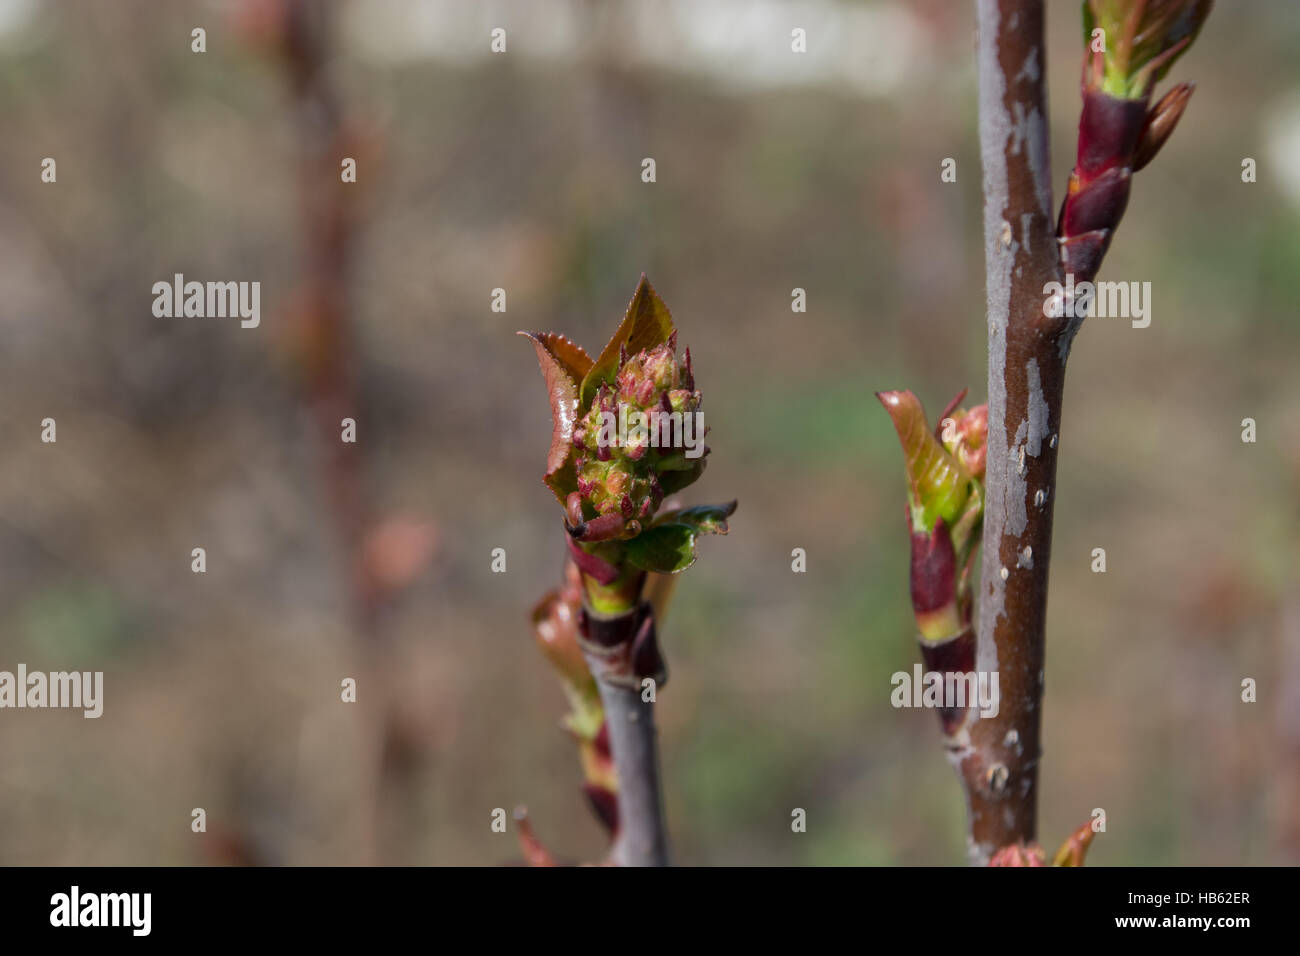 Buds on young twig - Stock Image